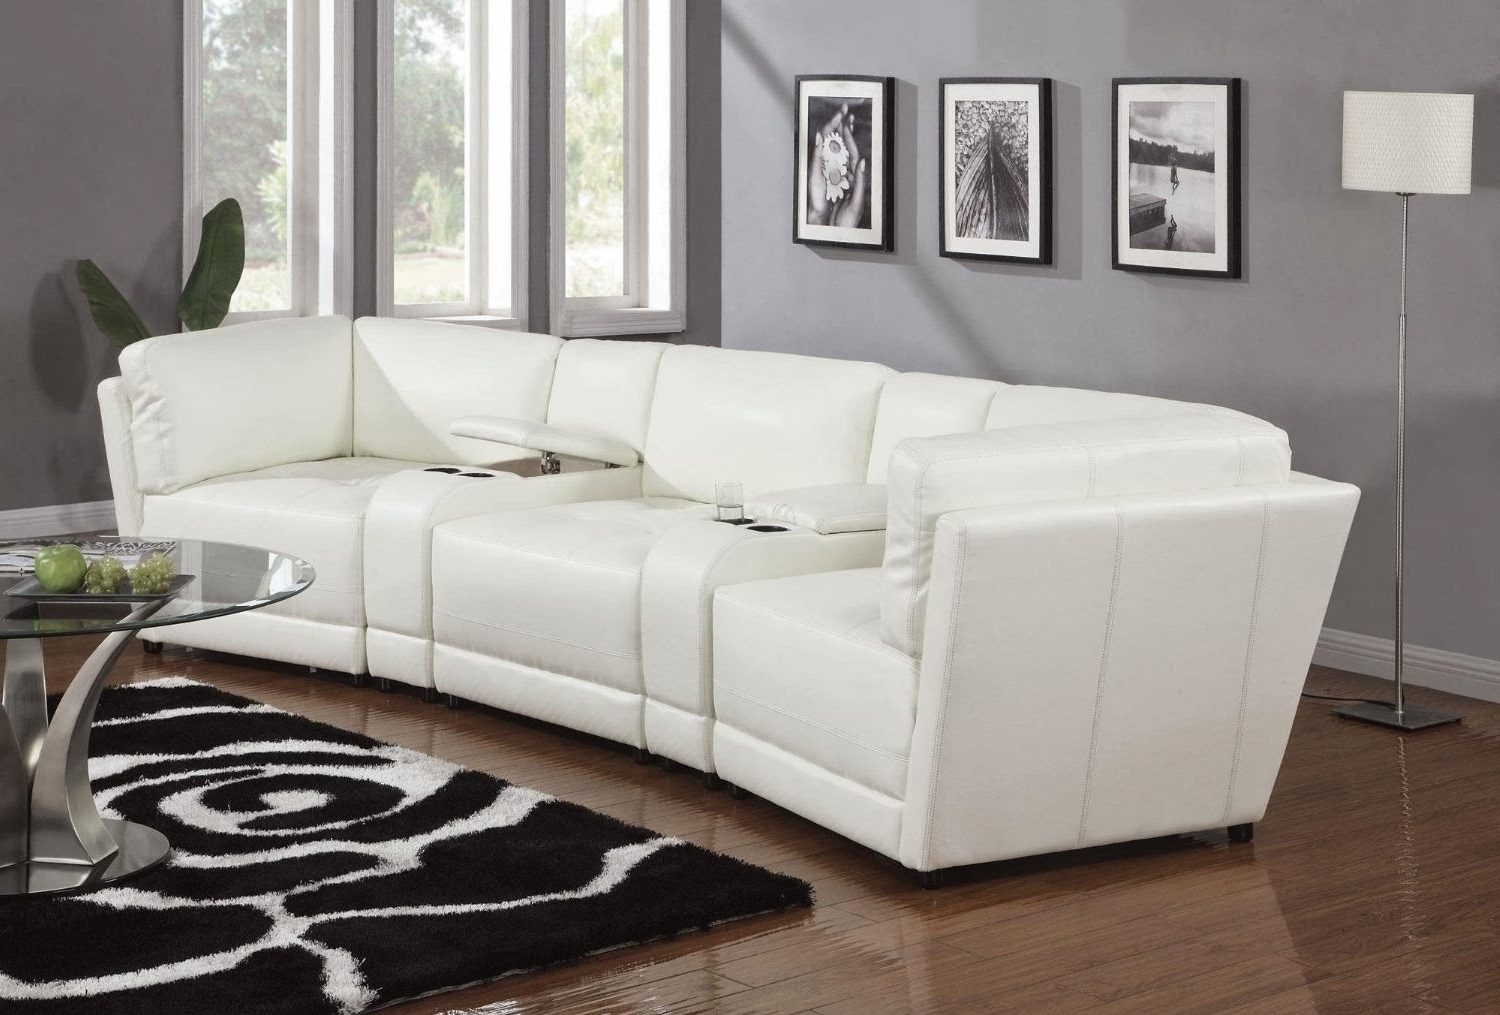 Trendy Sleek Sectional Sofas Regarding Gallery Sleek Sectional Sofas – Mediasupload (View 16 of 20)